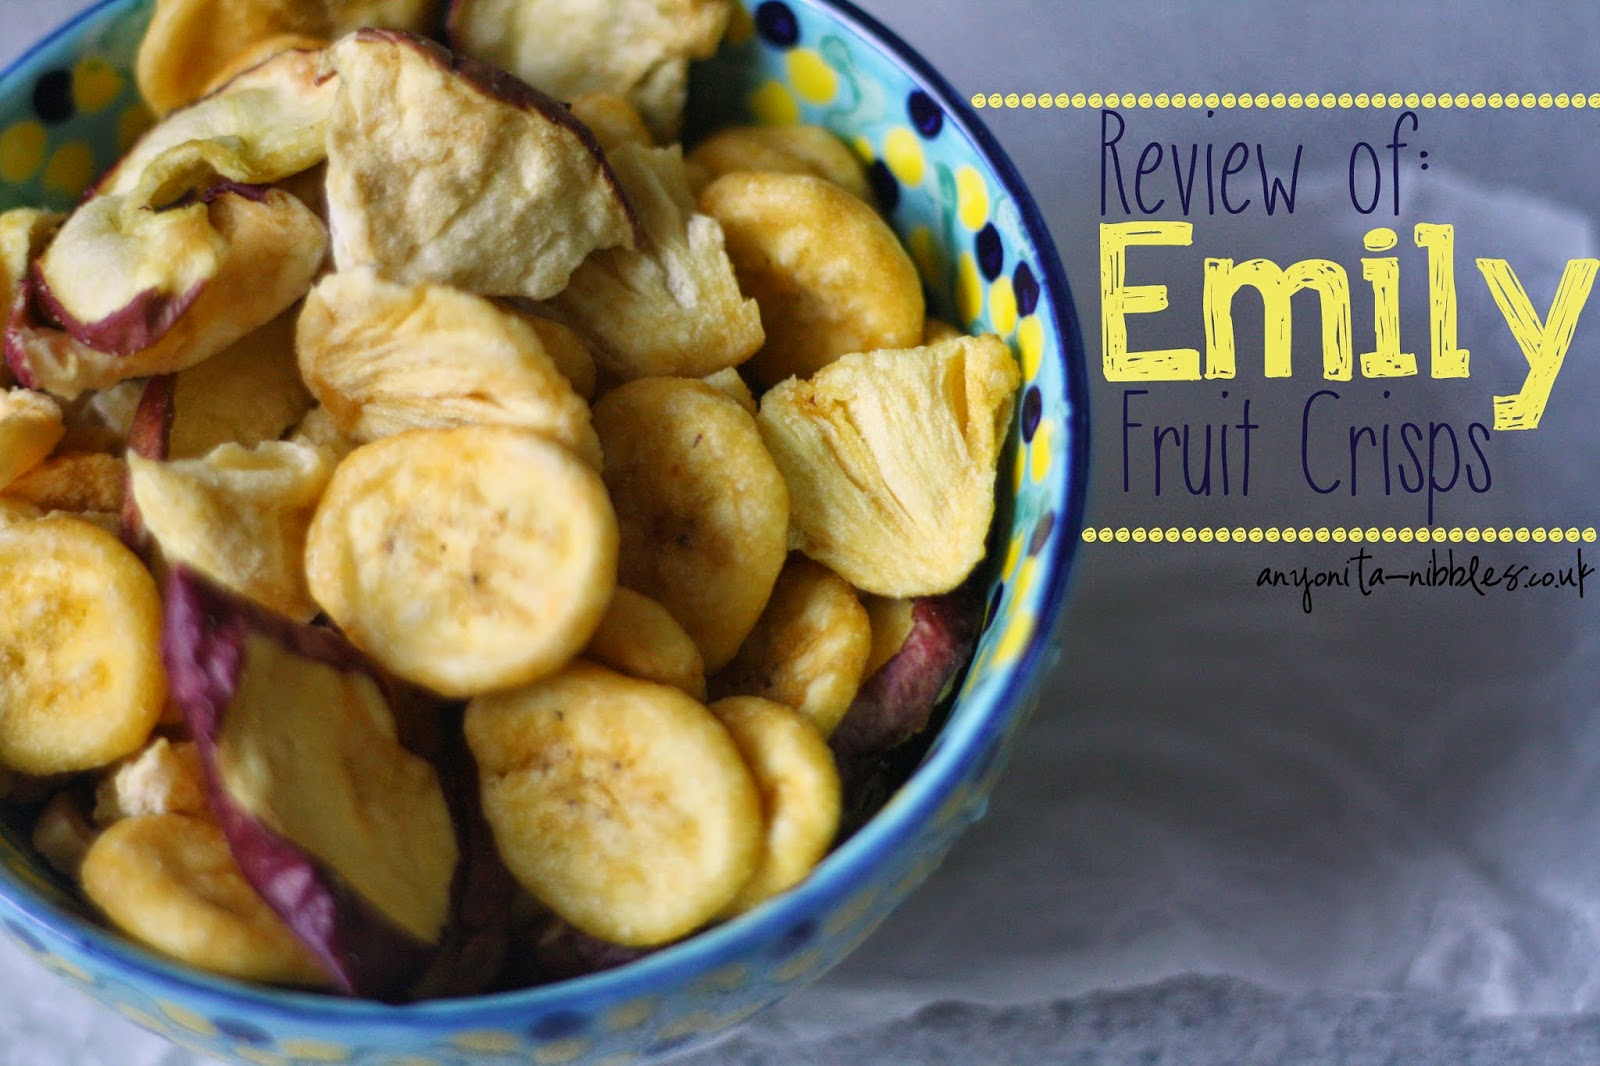 Emily Fruit Crisps Review from Anyonita-nibbles.co.uk